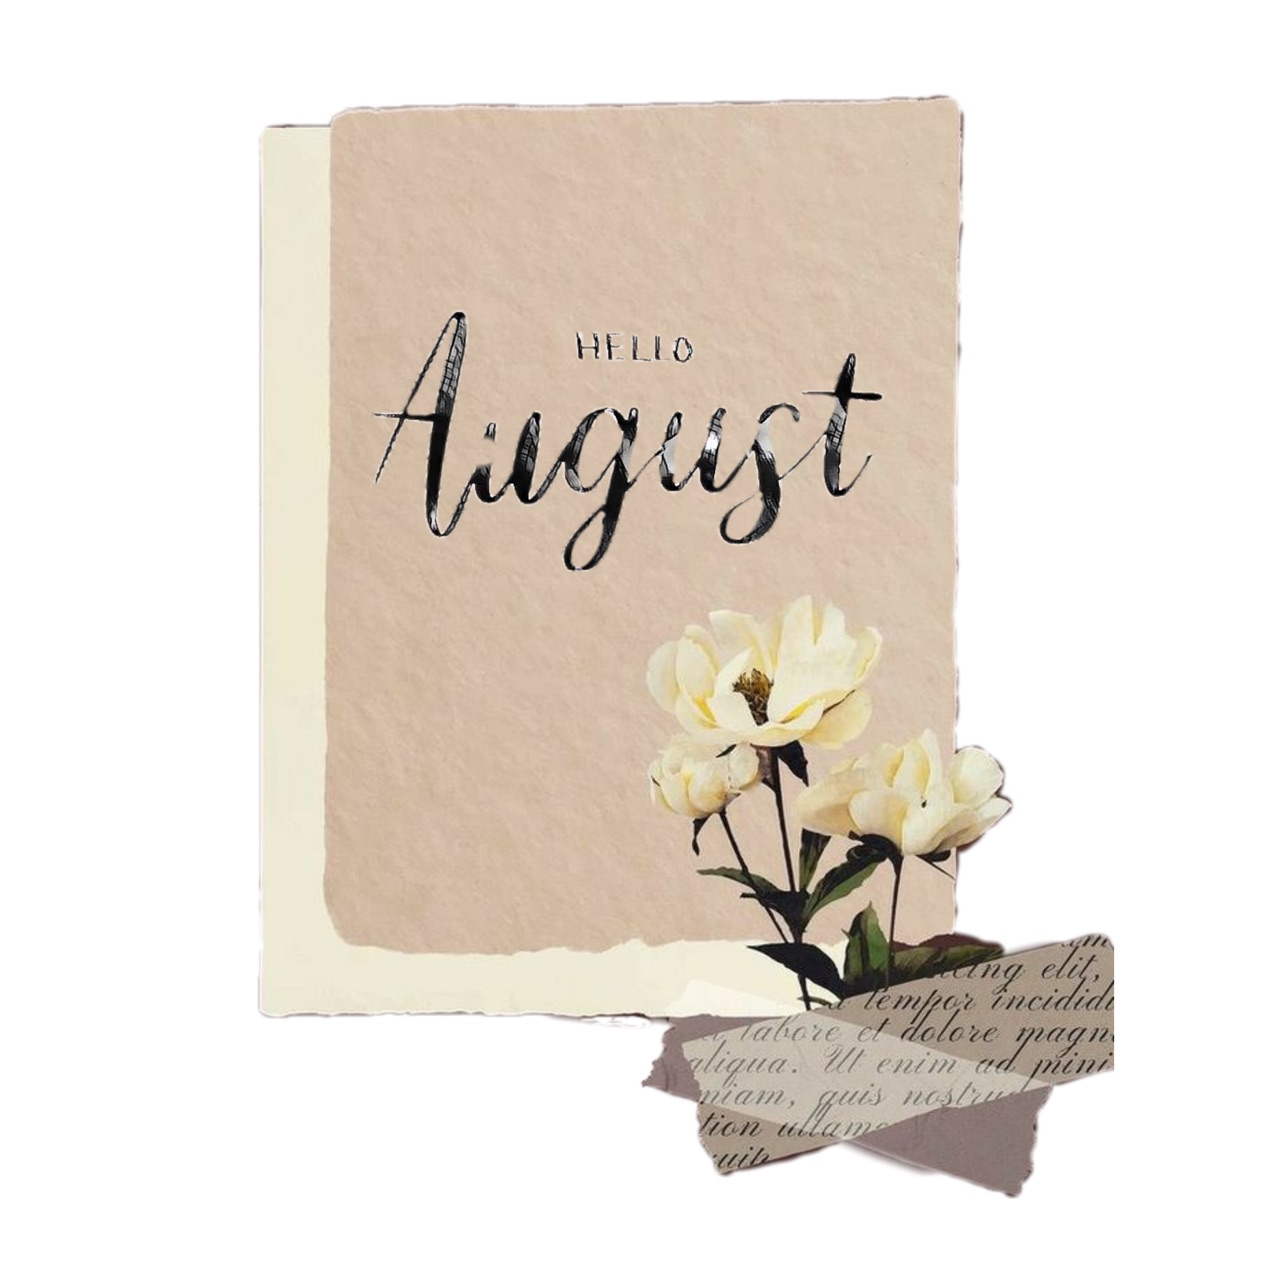 August, hello, and indie image